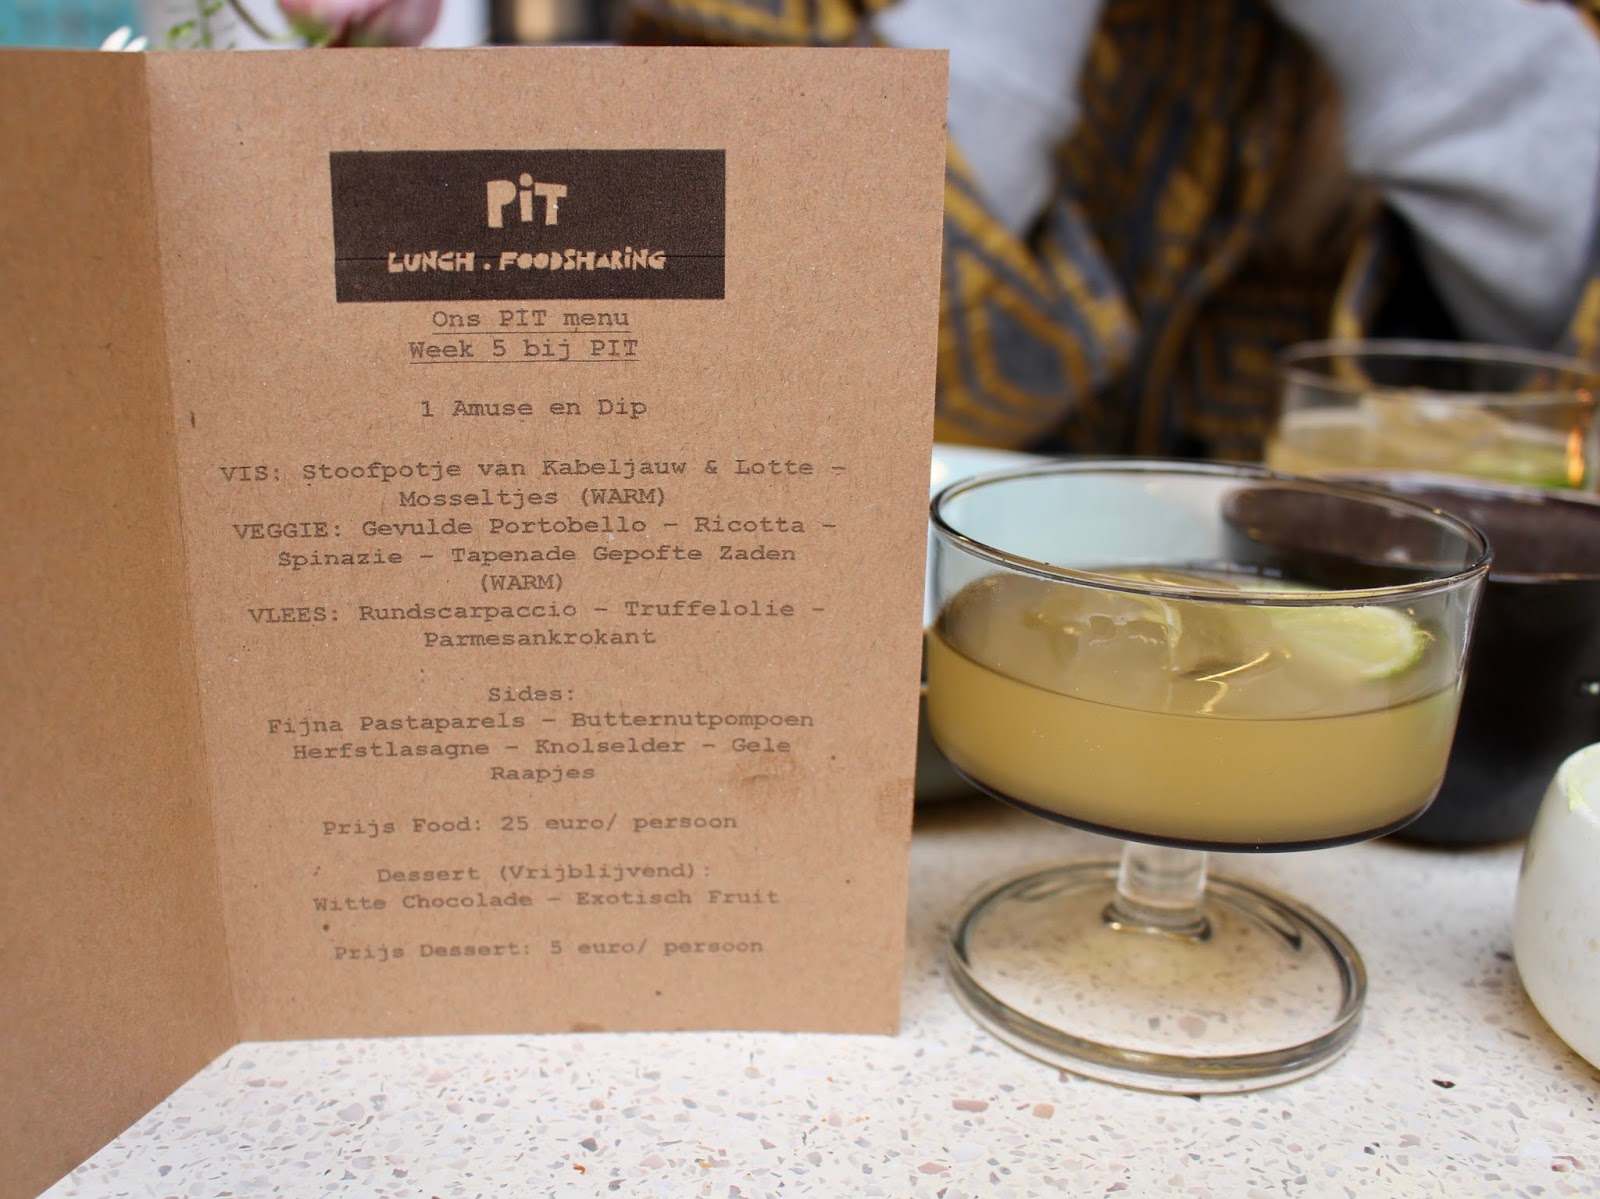 Pit pop-up restaurant | Fabrieck Sint-Niklaas